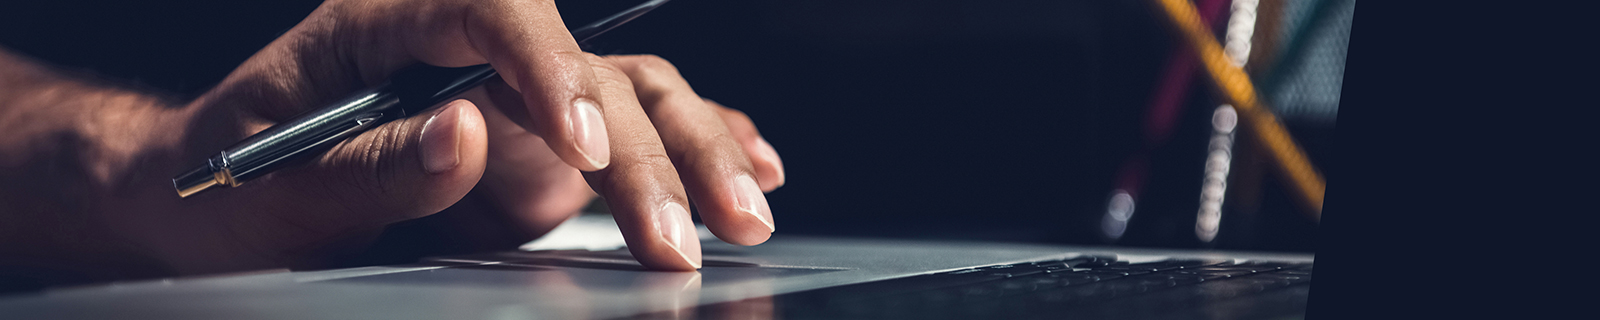 Person typing on a keyboard with a pen in hand